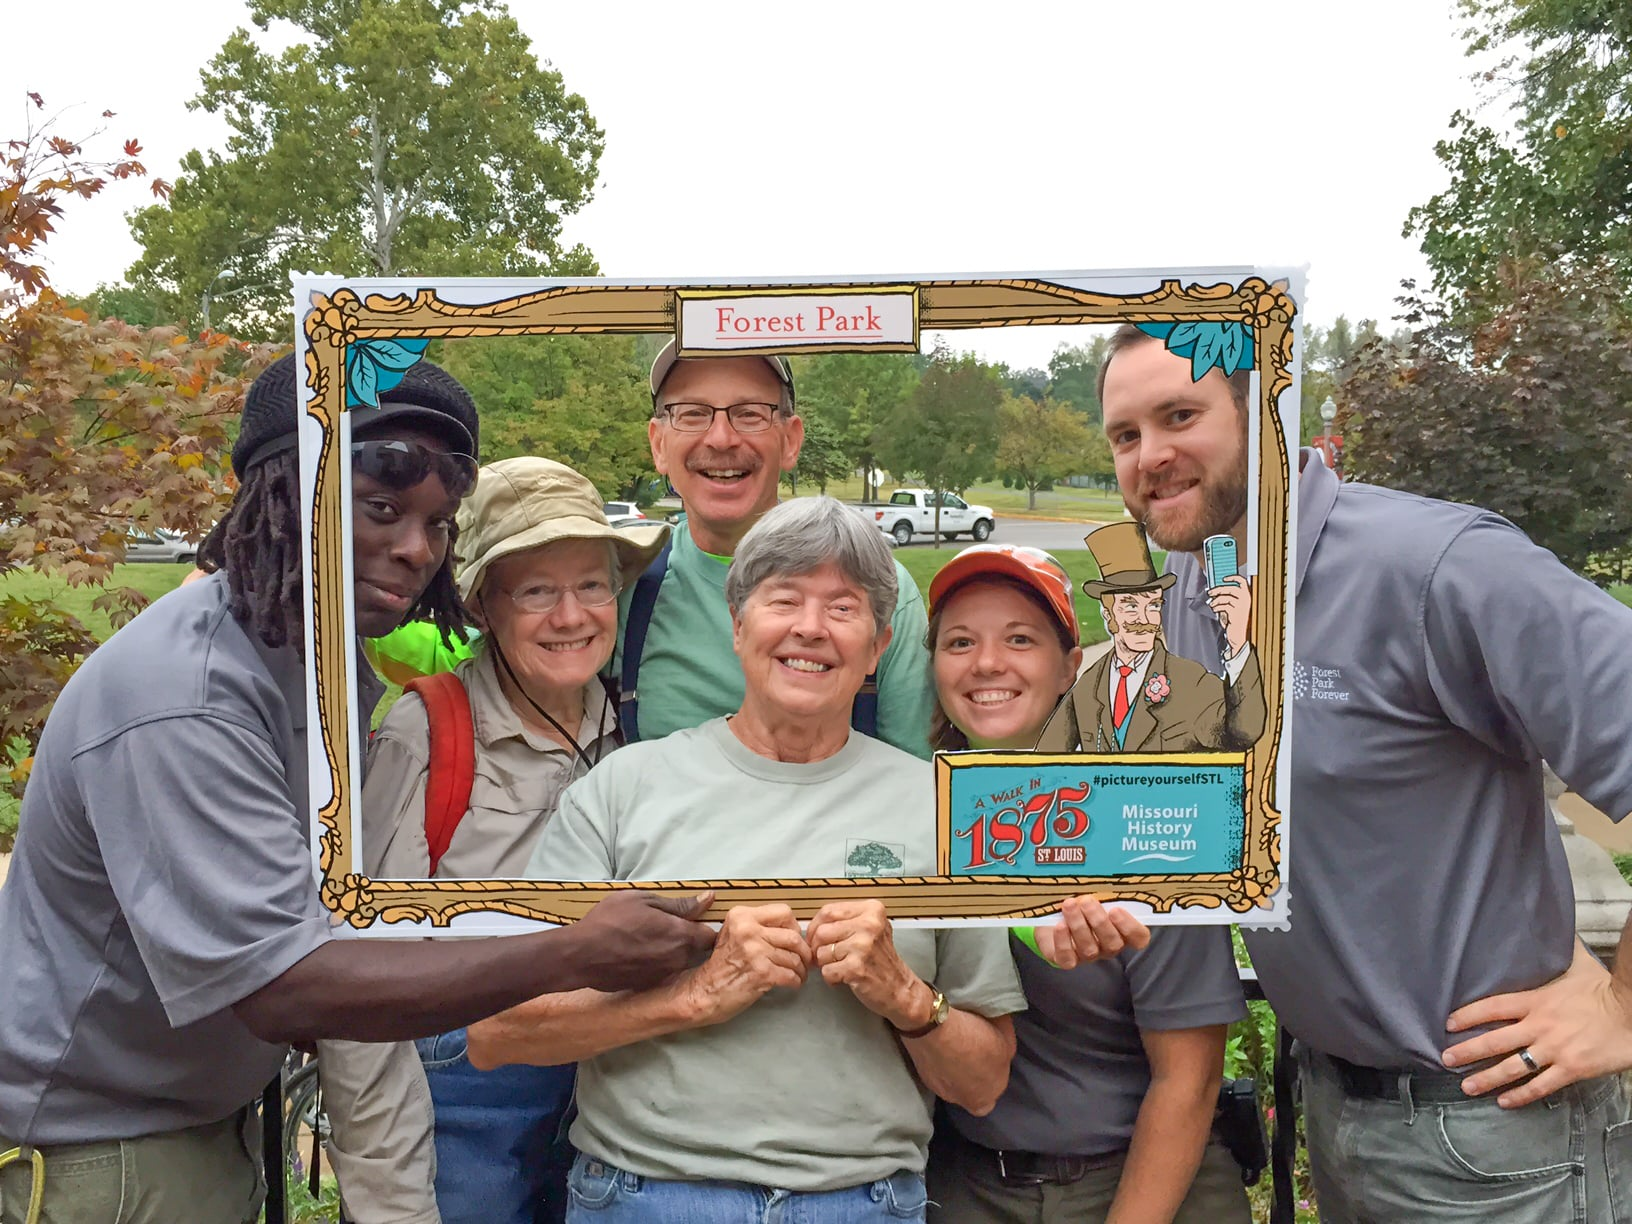 Forest Park Forever Nature Reserve staff and volunteers 'picture themselves' in St. Louis history